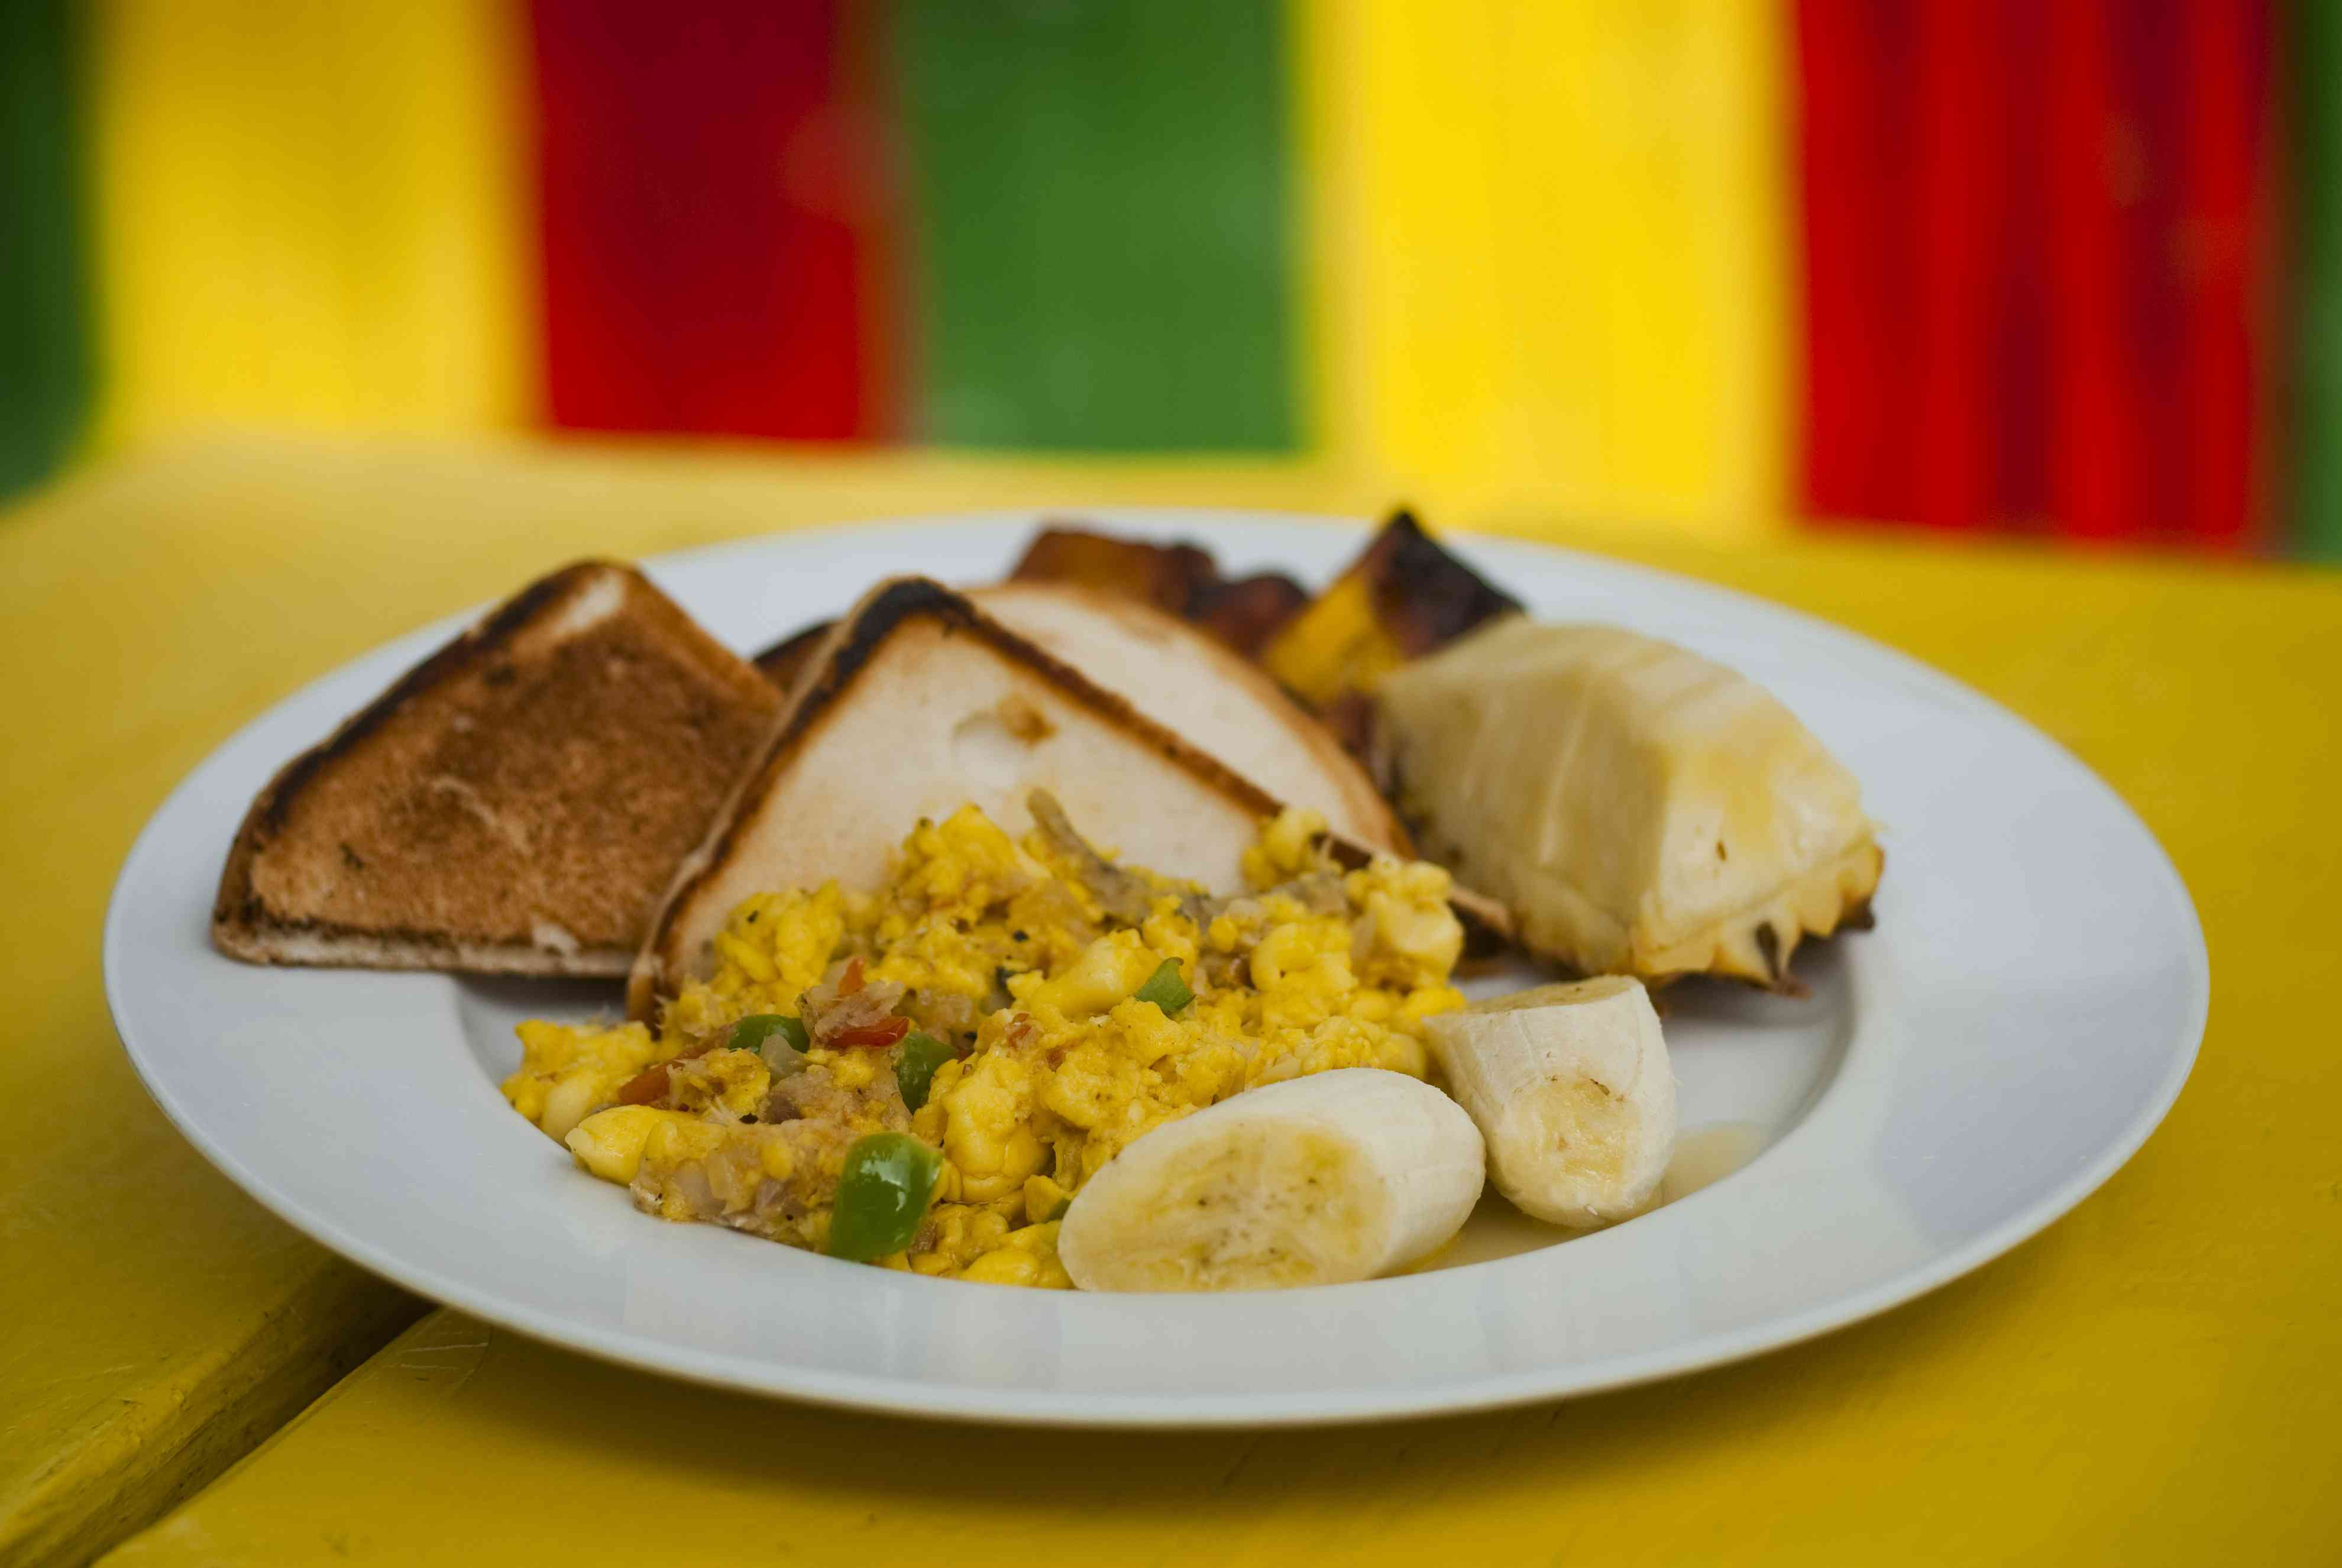 Ackee & Saltfish breakfast at Alice's Restaurant in West End